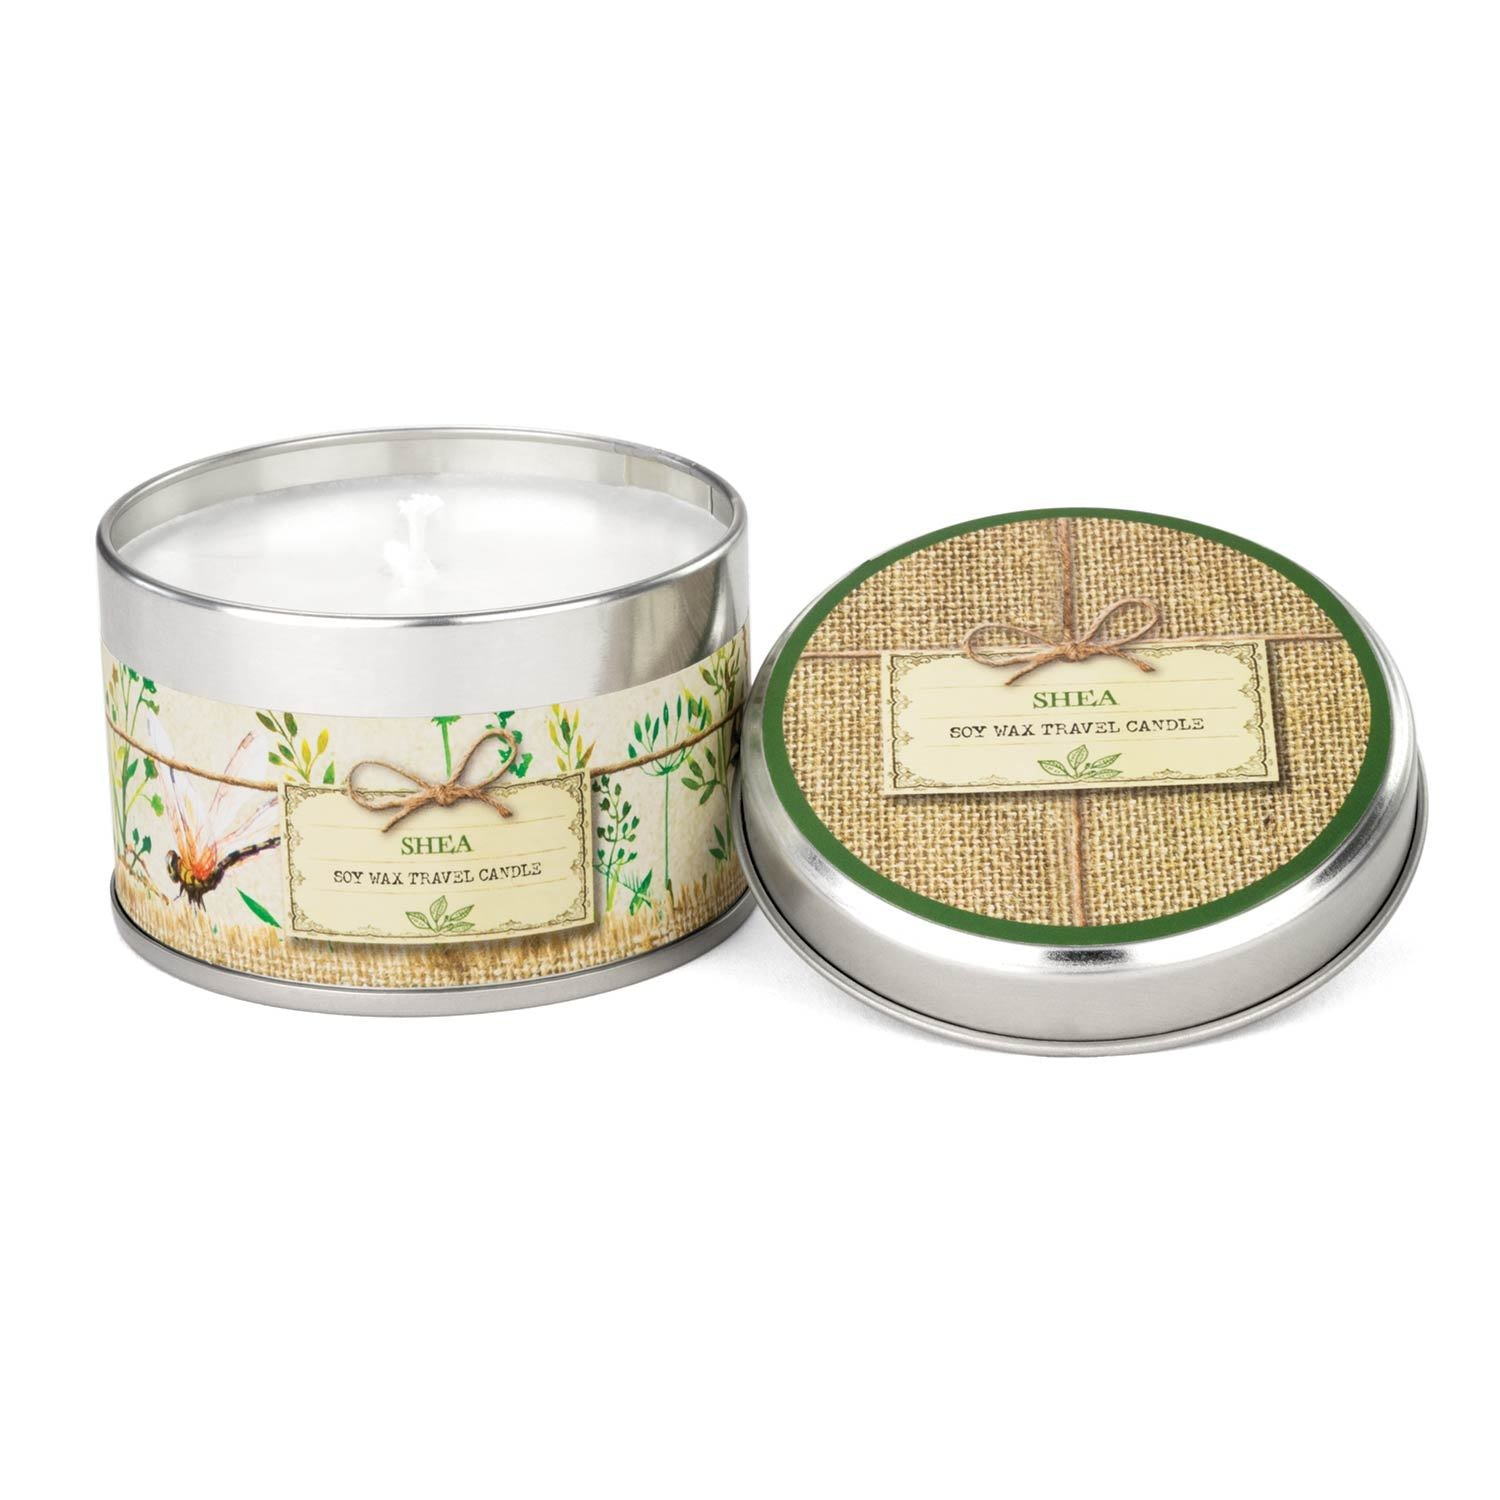 Shea Travel Candle